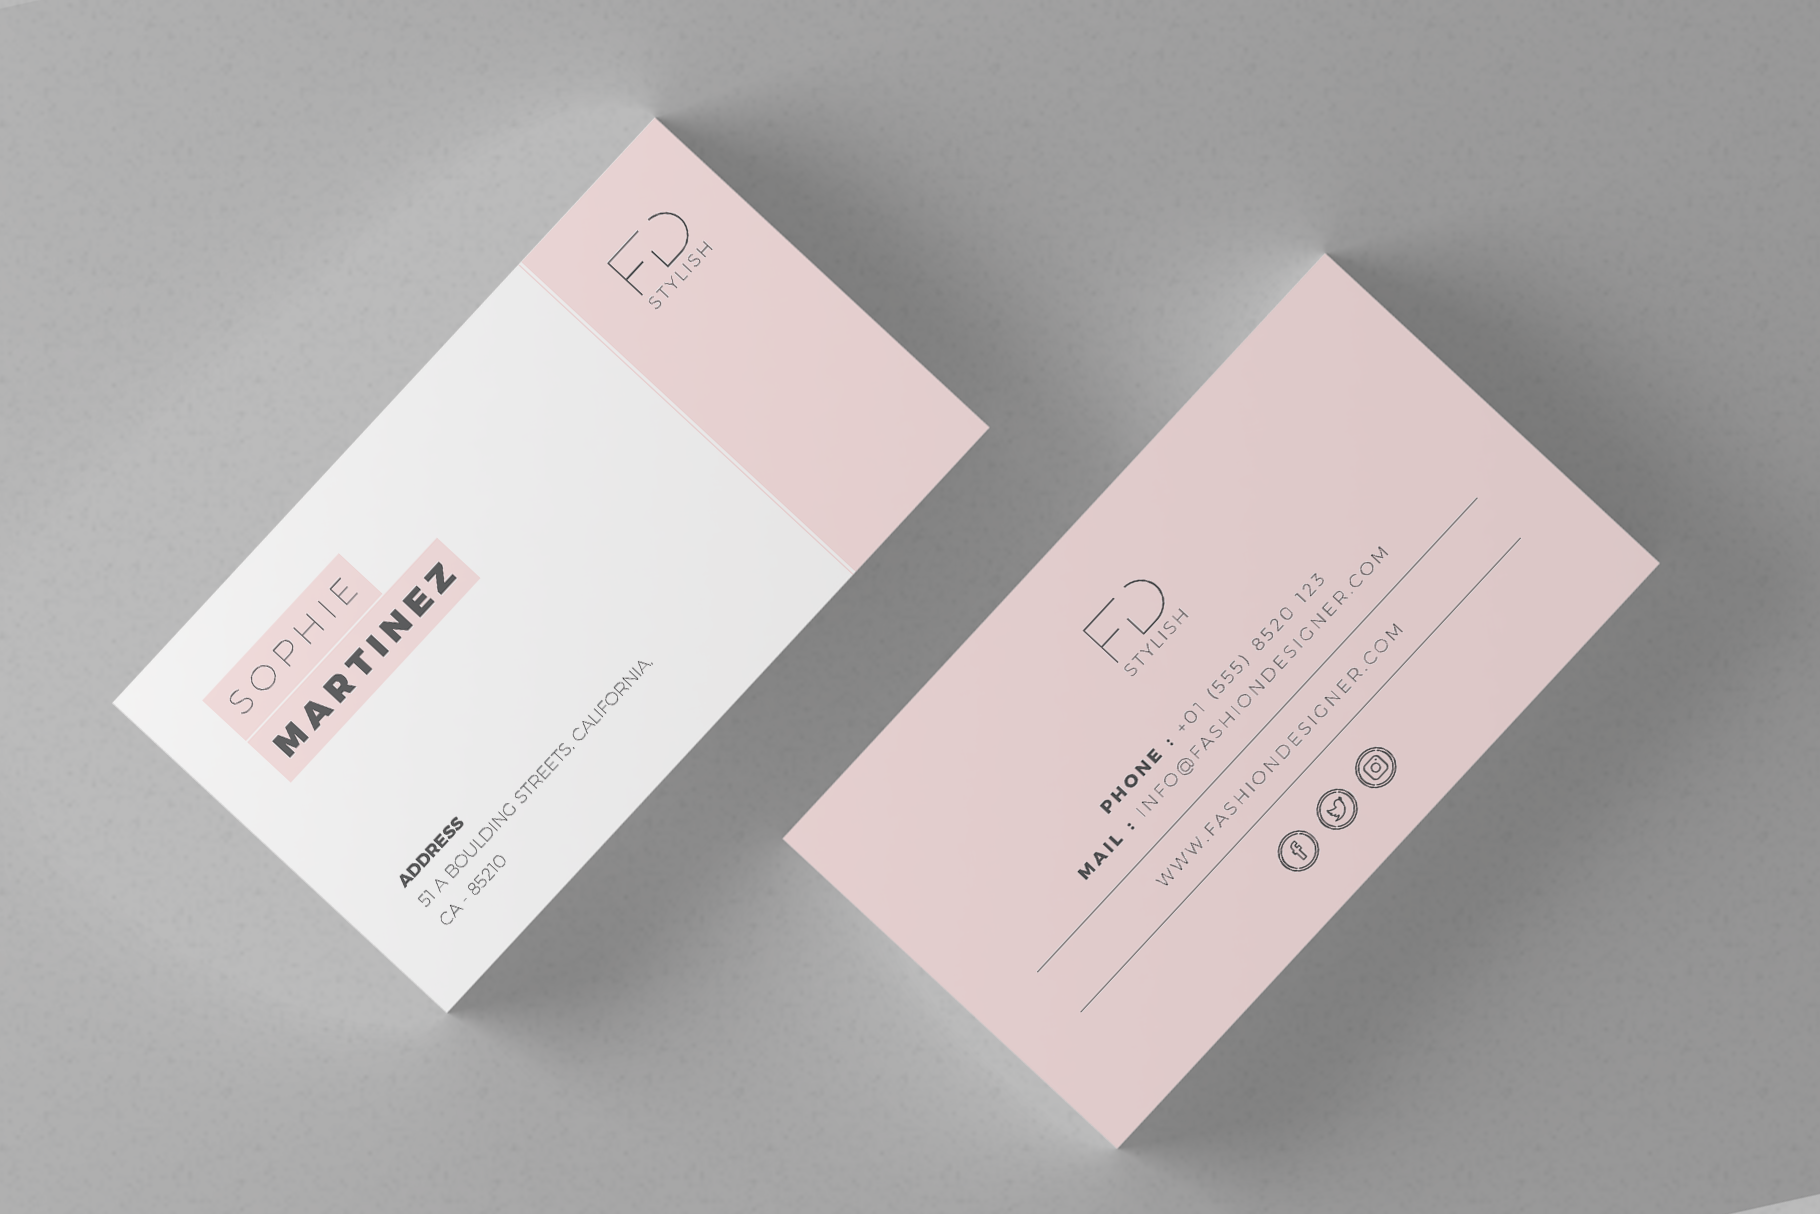 Minimalist Business Cards Graphic by onegraphics - Creative Fabrica